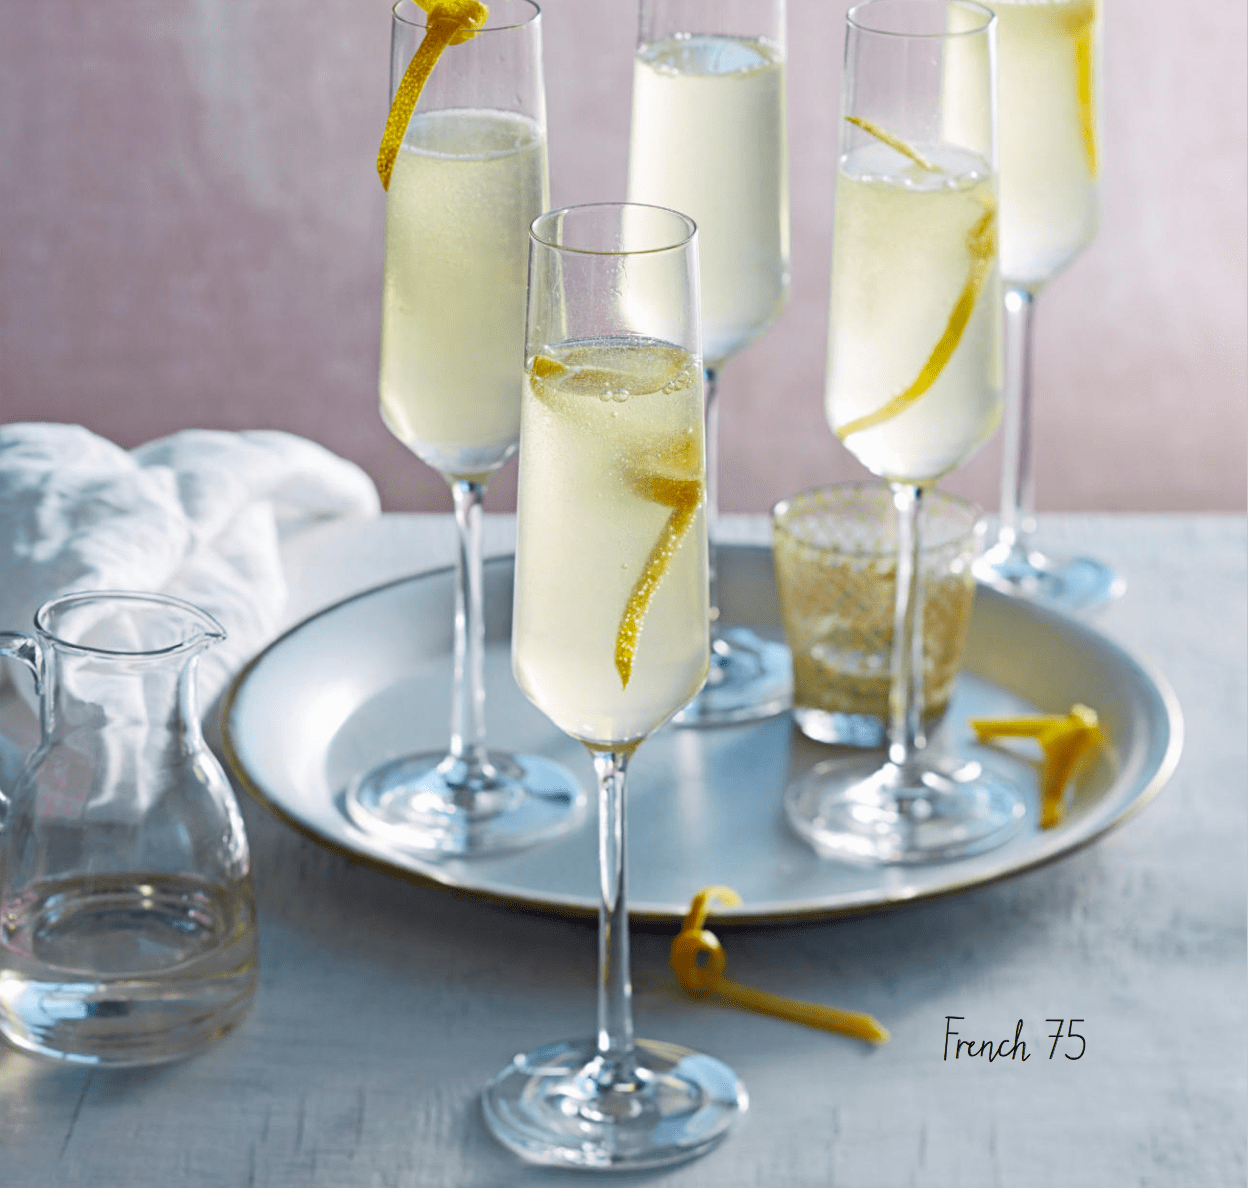 Welkomstdrankje Recept Een Perfect Alternatief Voor Champagne French 75 Cocktail